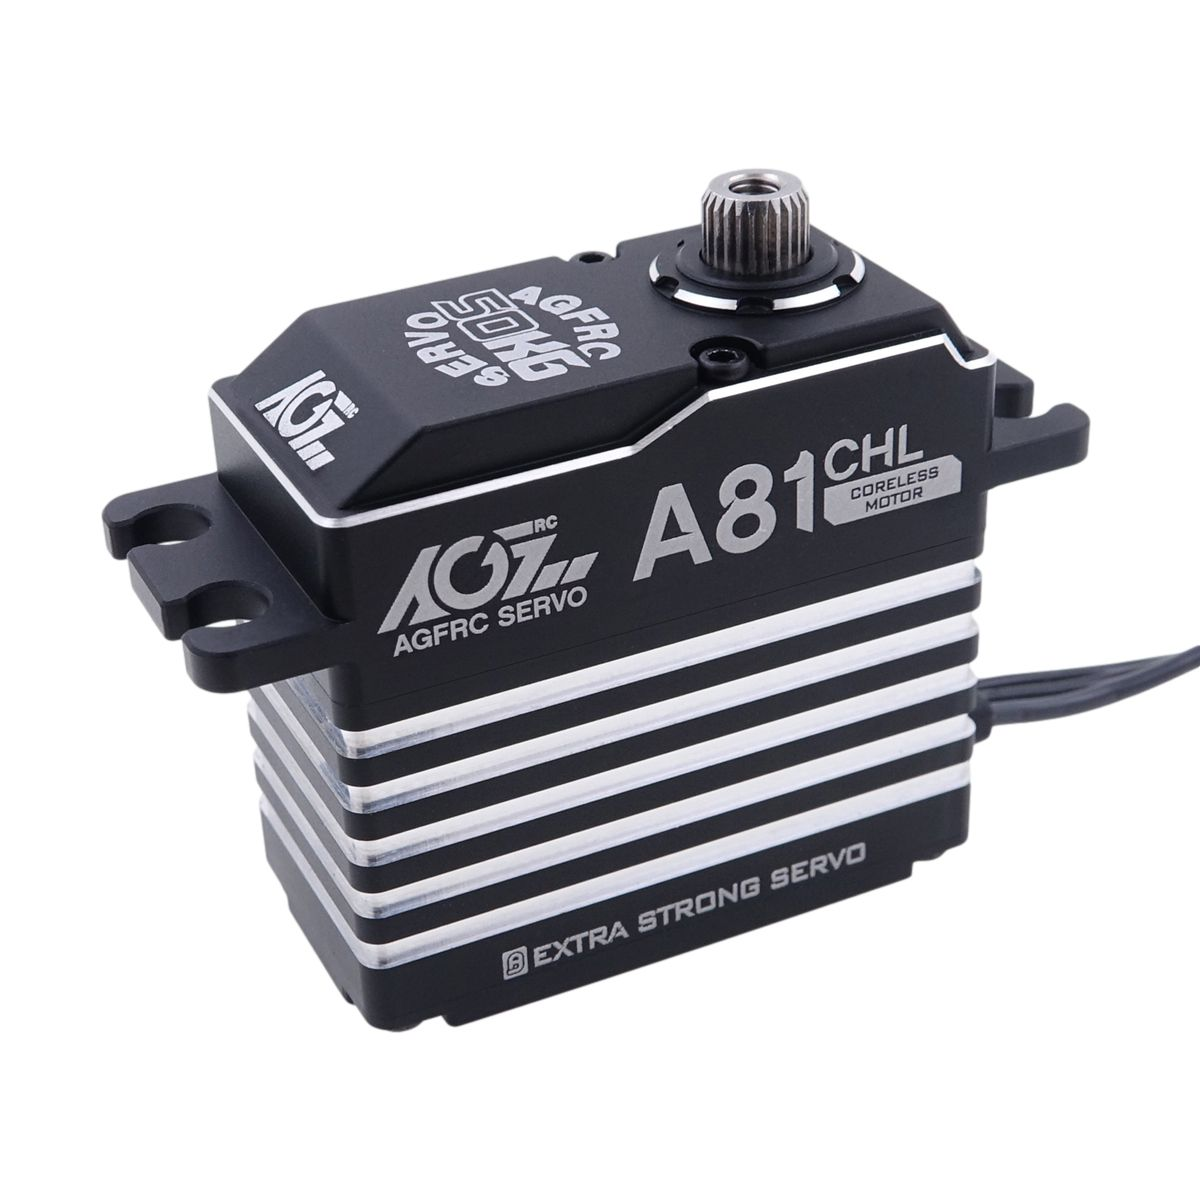 A81CHL Large Torque Robust Stucture Programmable Digital Coreless Servo Motor